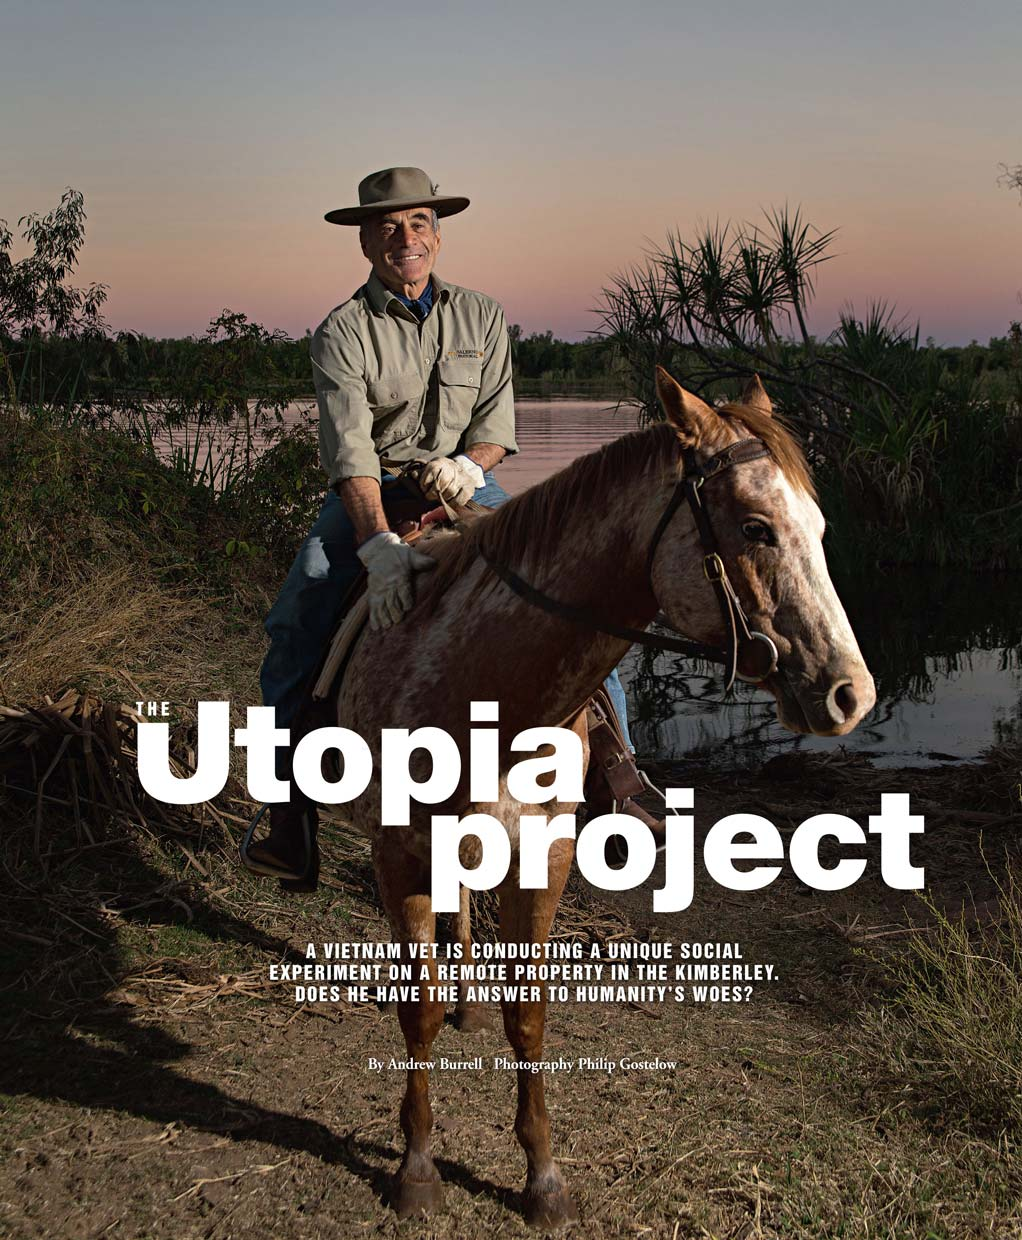 Weekend Australia Magazine - Utopia Project feature 2015